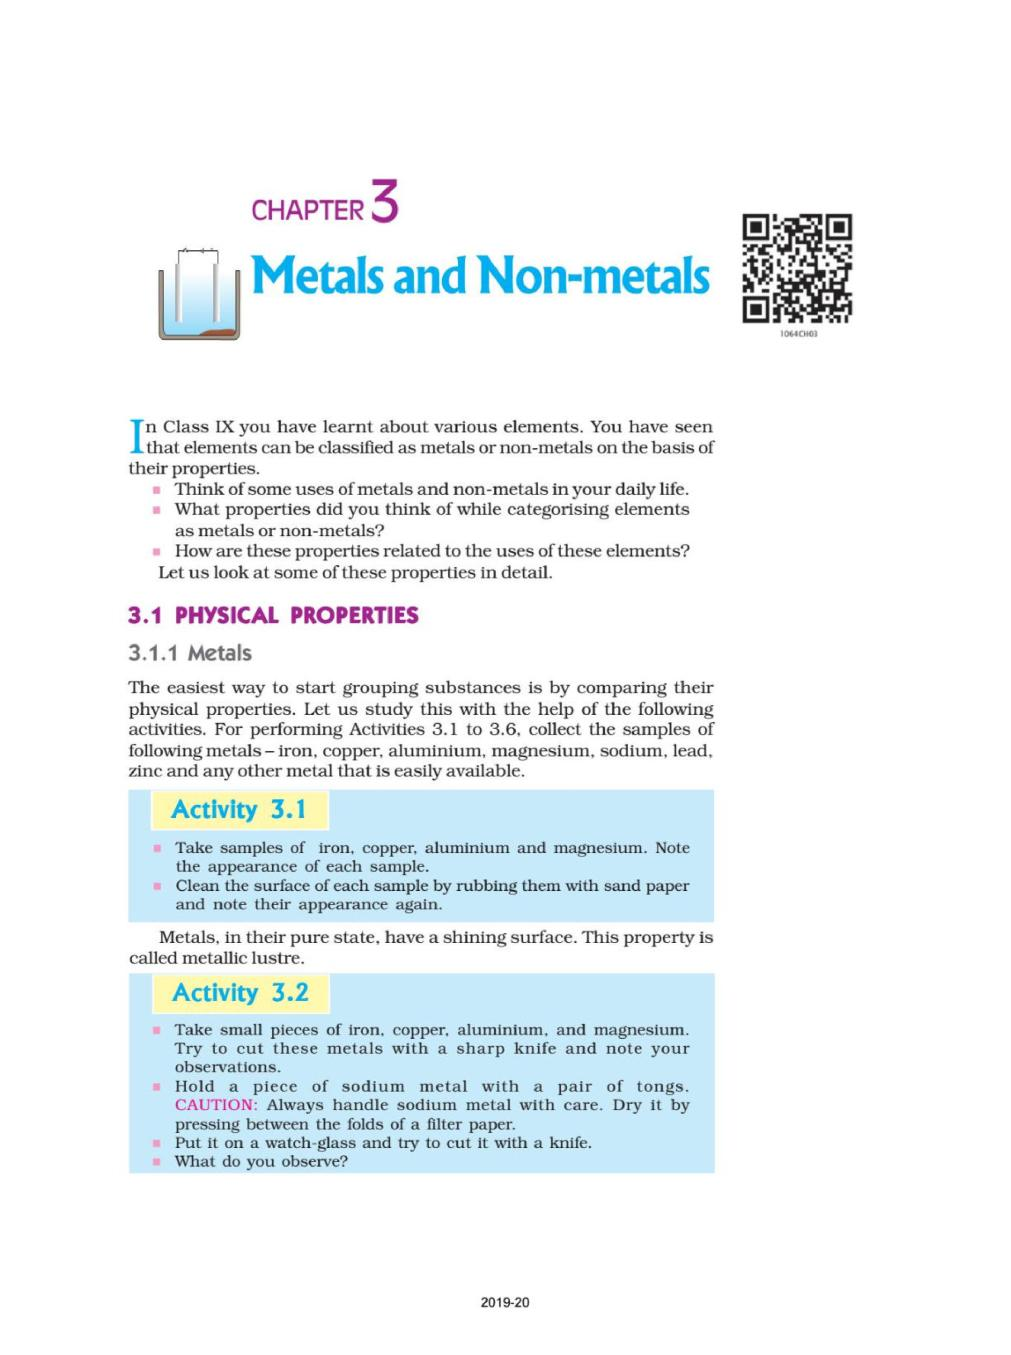 NCERT Book Class 10 Science Chapter 3 Metals and Non-metals - Page 1